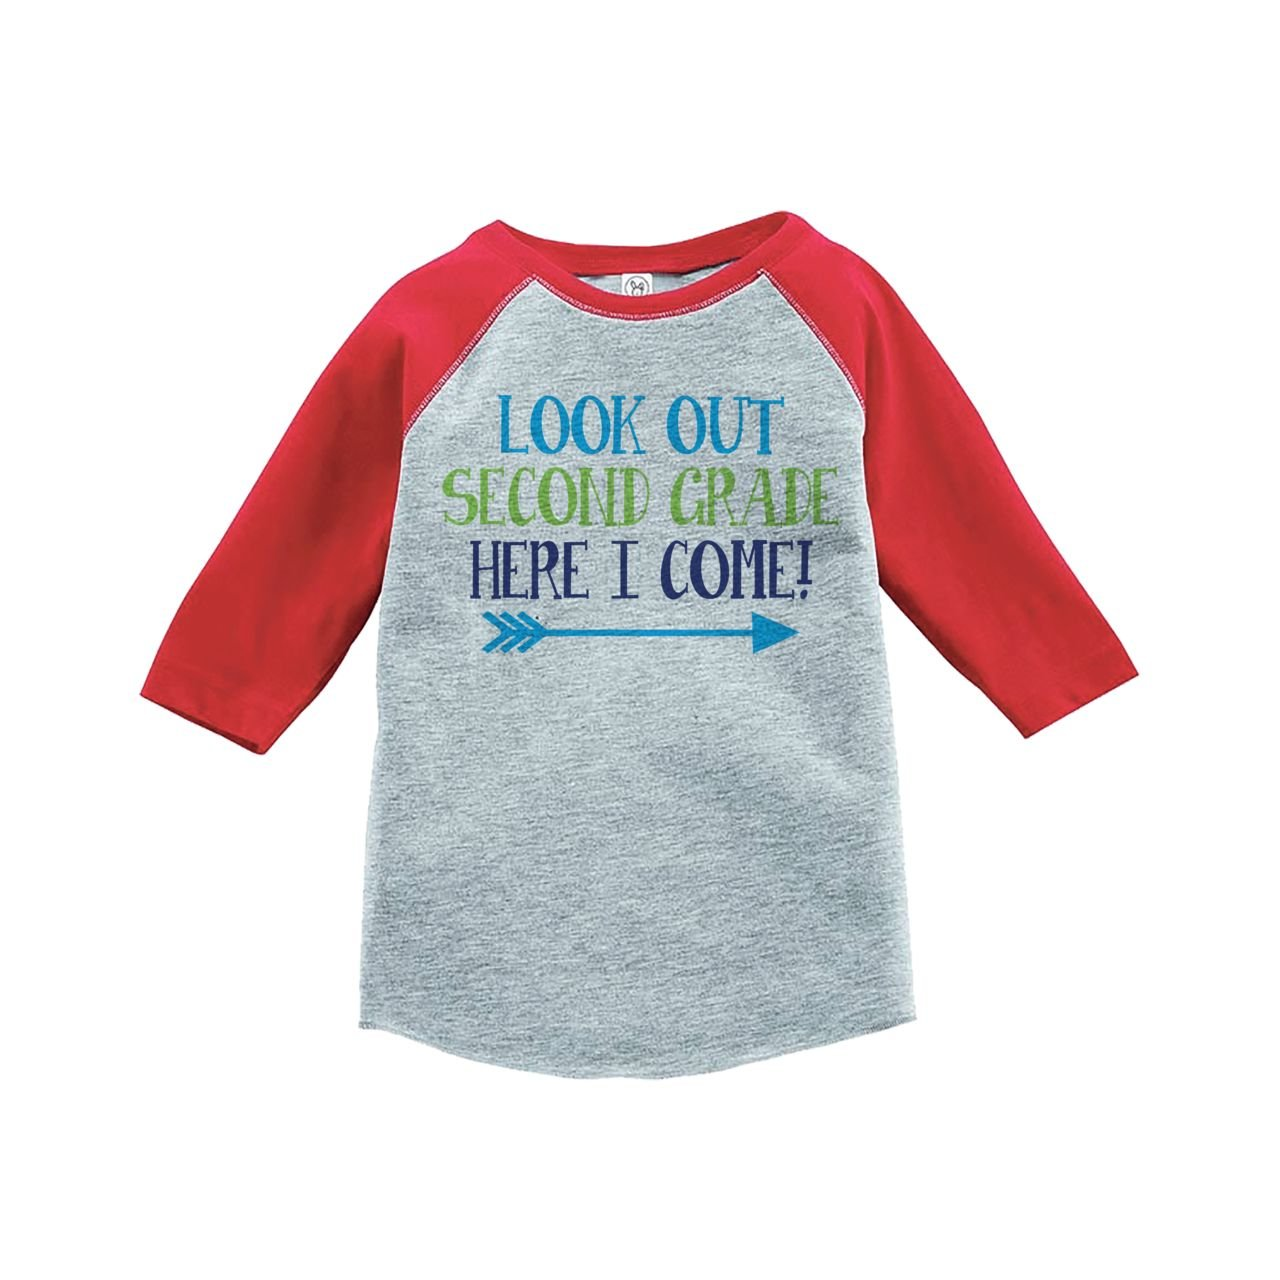 Custom Party Shop Kids Look Out 2nd Grade Red Baseball Tee